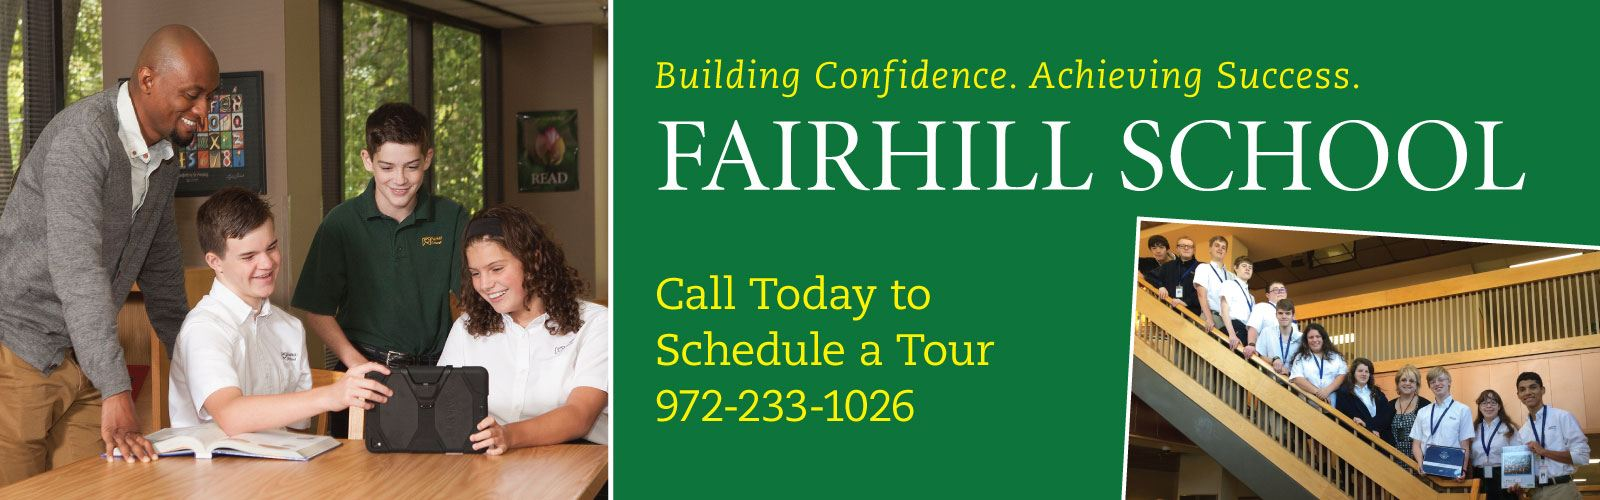 Tour the Fairhill School Today